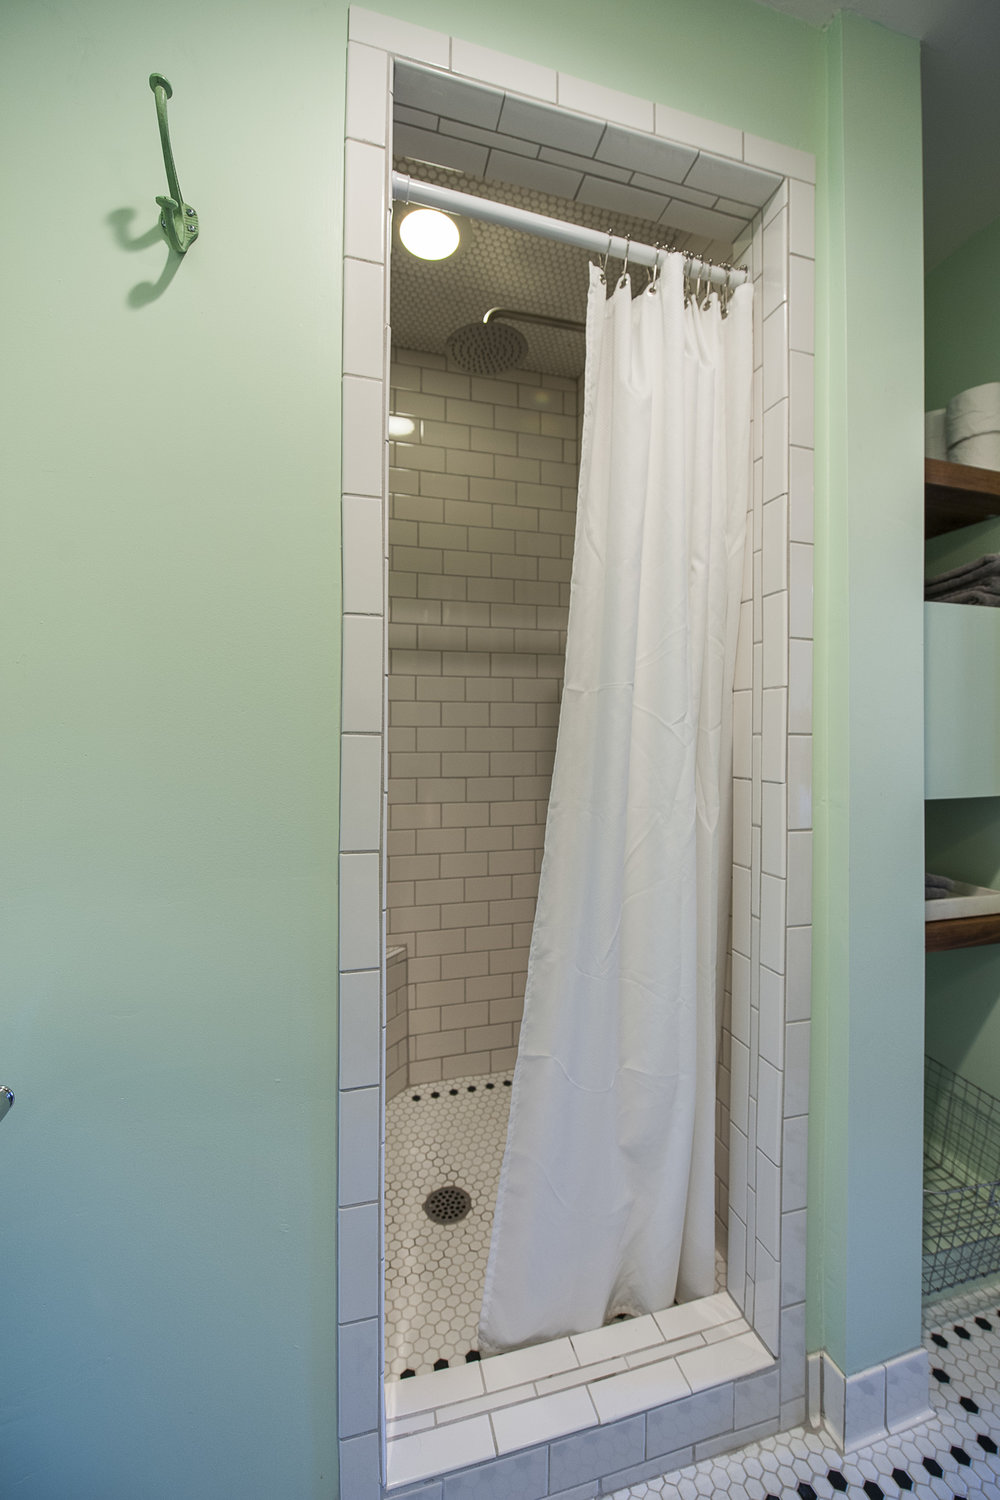 Tiled shower with rainfall style showerhead